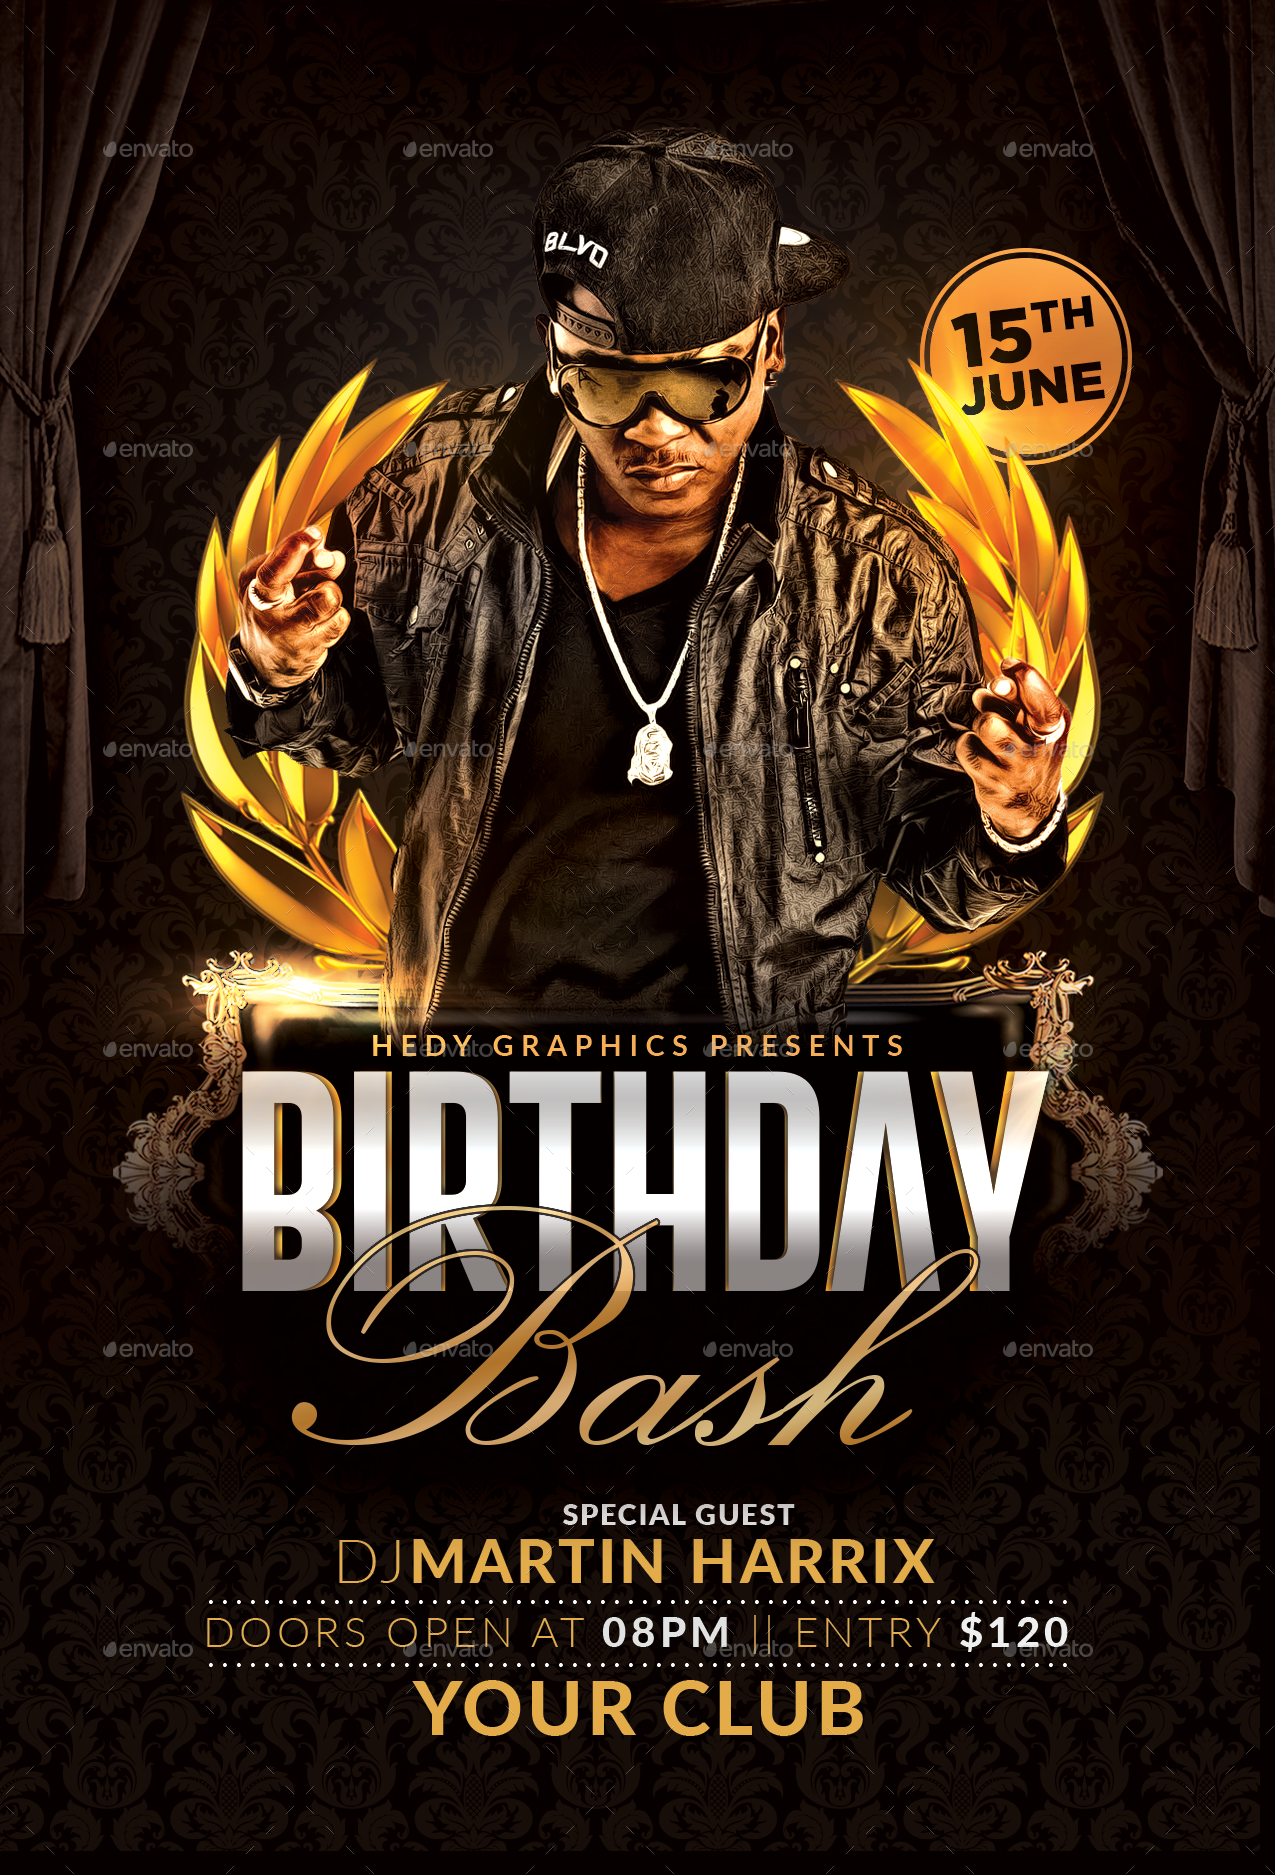 birthday bash flyer by hedygraphics